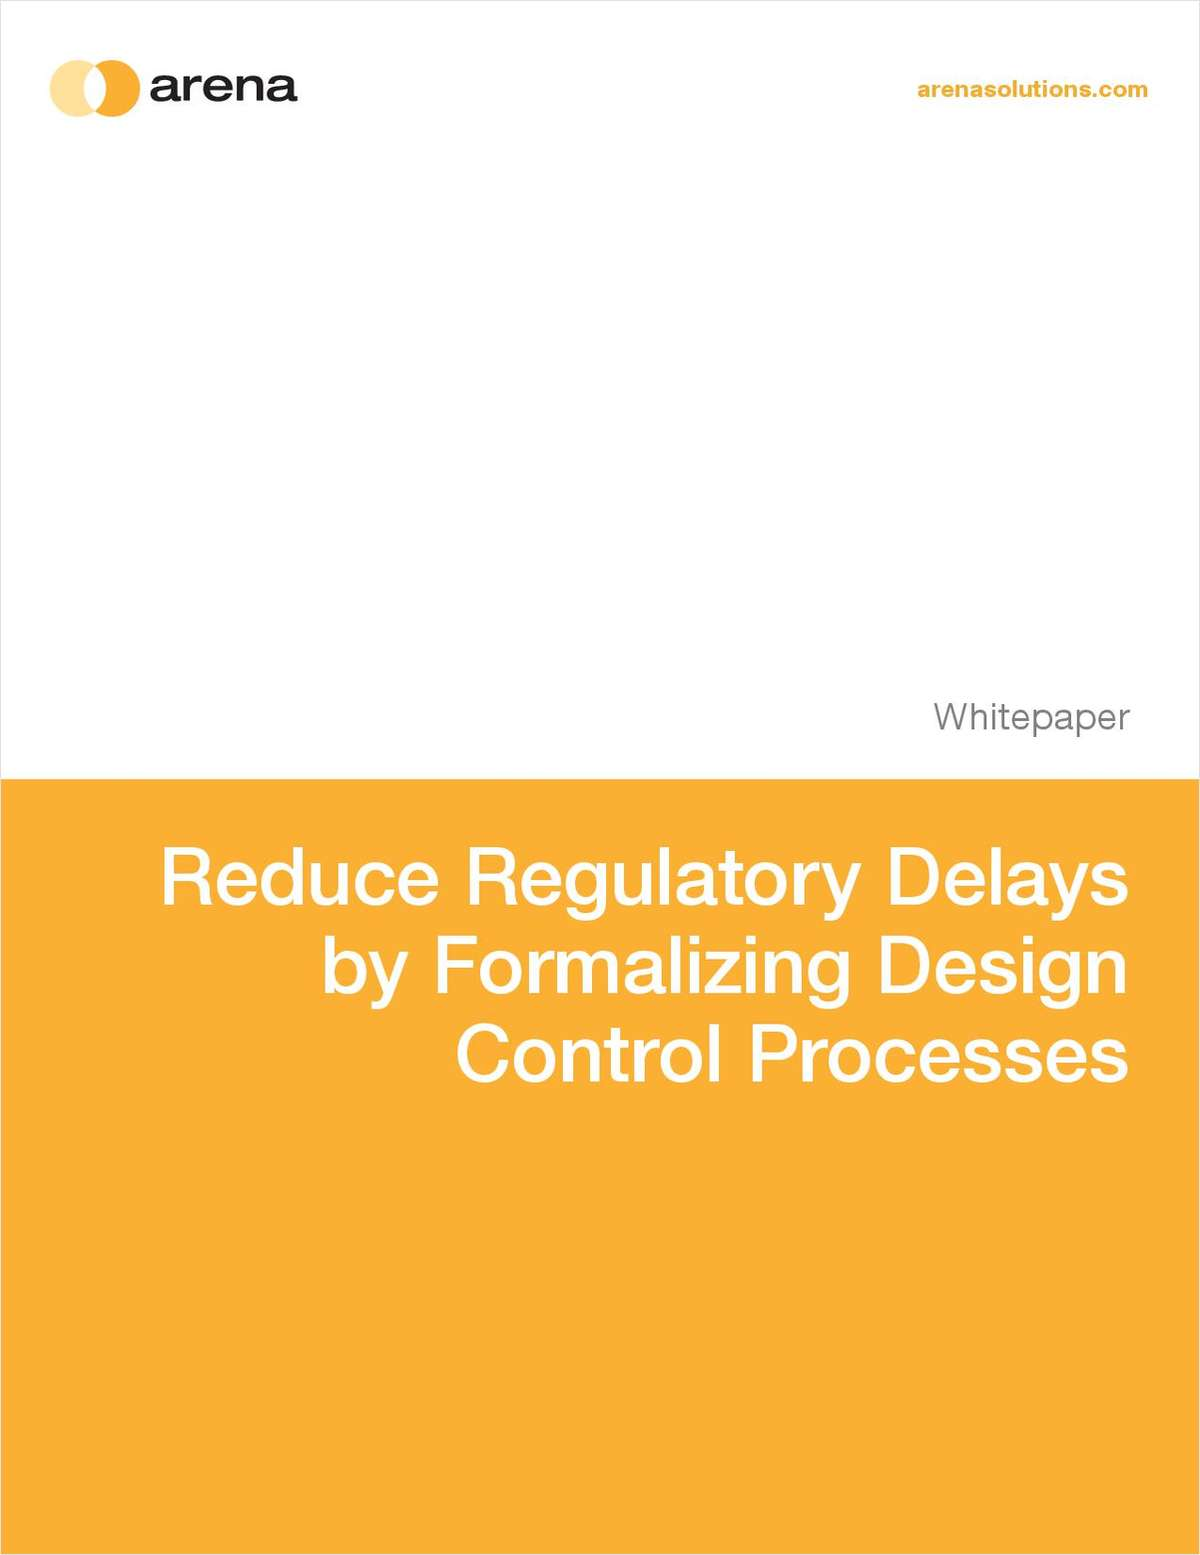 How to Reduce Regulatory Delays by Formalizing Design Processes